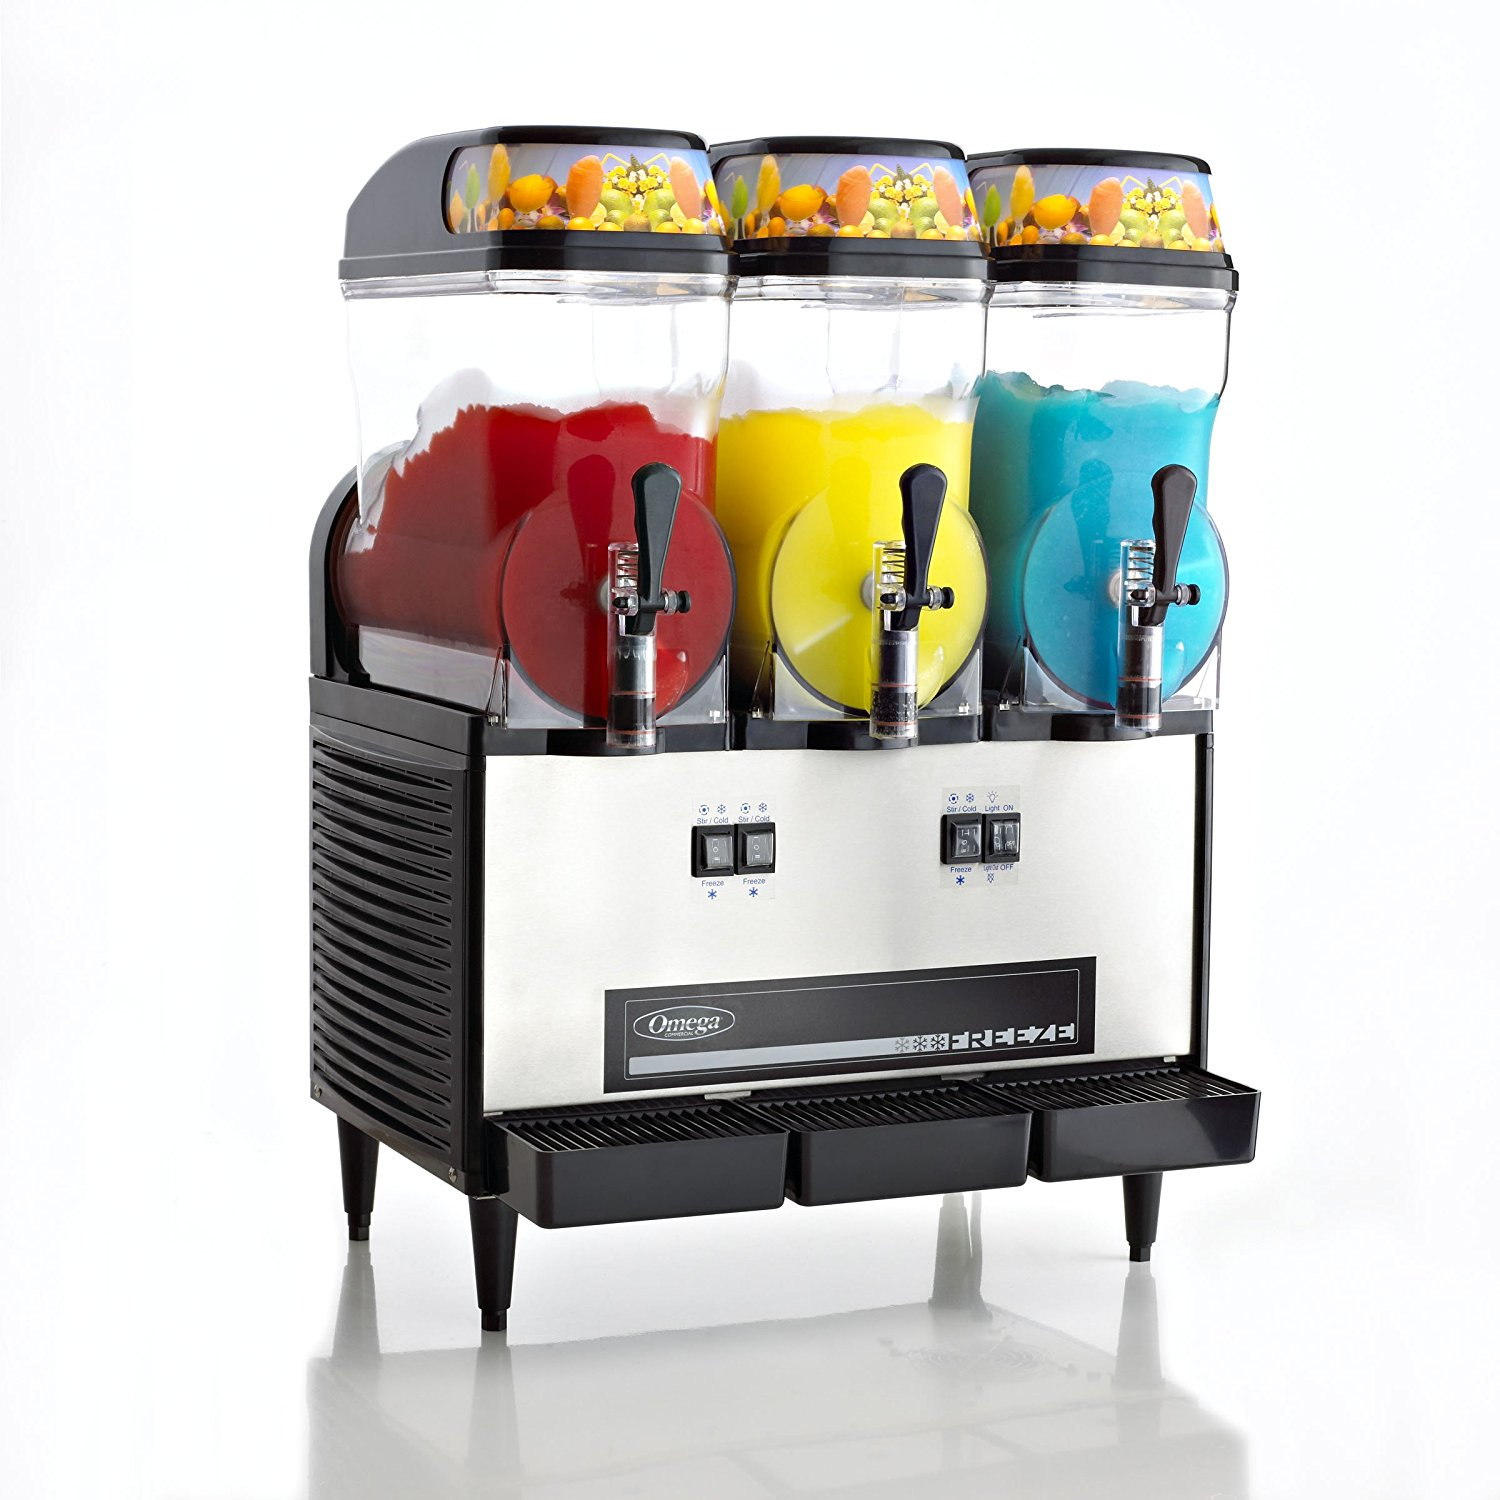 Omega OFS30 Commercial 1/2-Horsepower 980-Watt Granita Machine with 3 3-Gallon Bowls